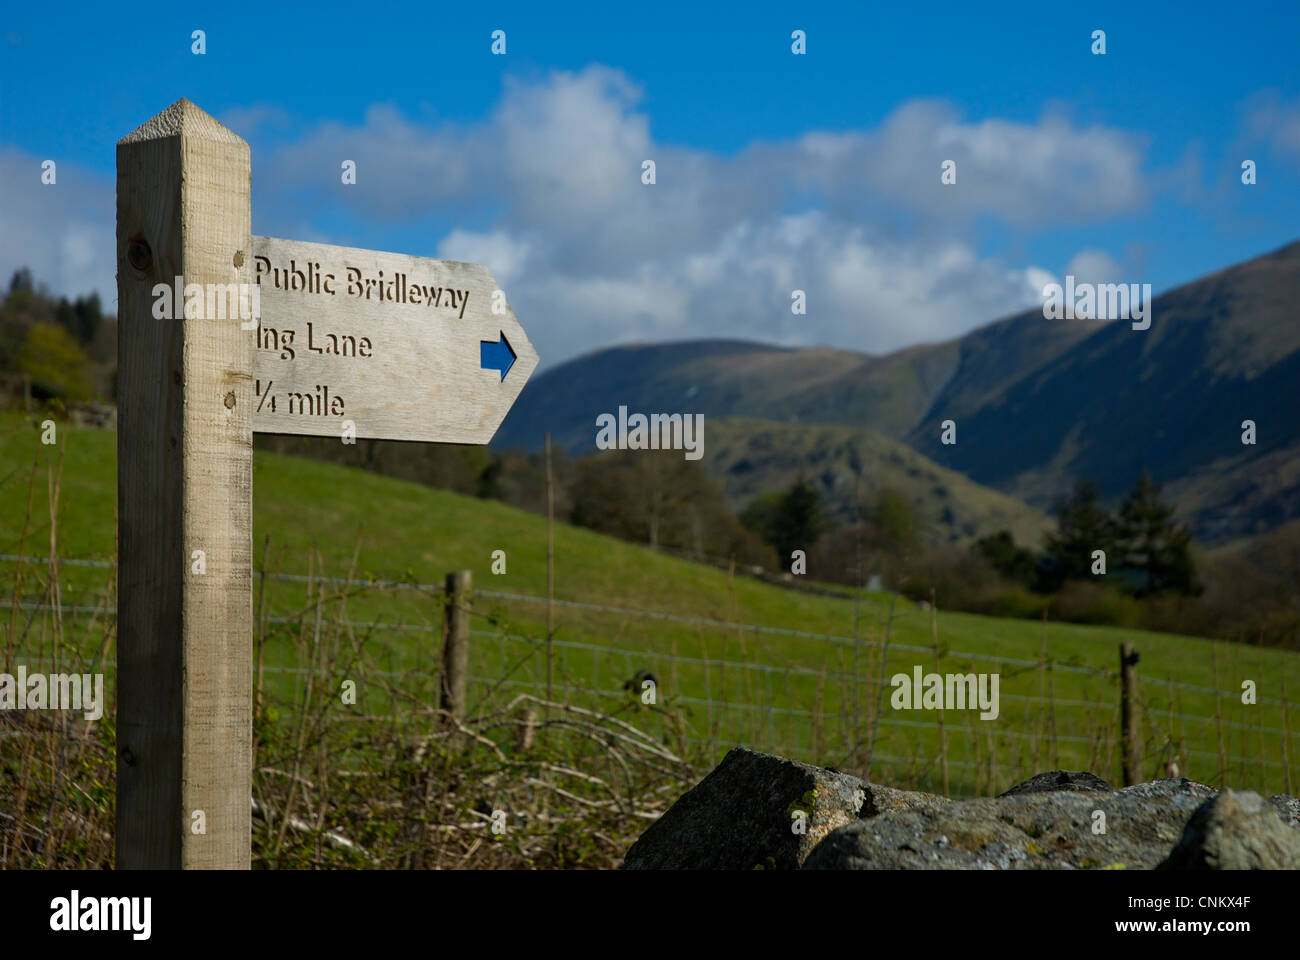 Sign for public bridleway in the village of Troutbeck, Lake District National Park, Cumbria, England UK - Stock Image